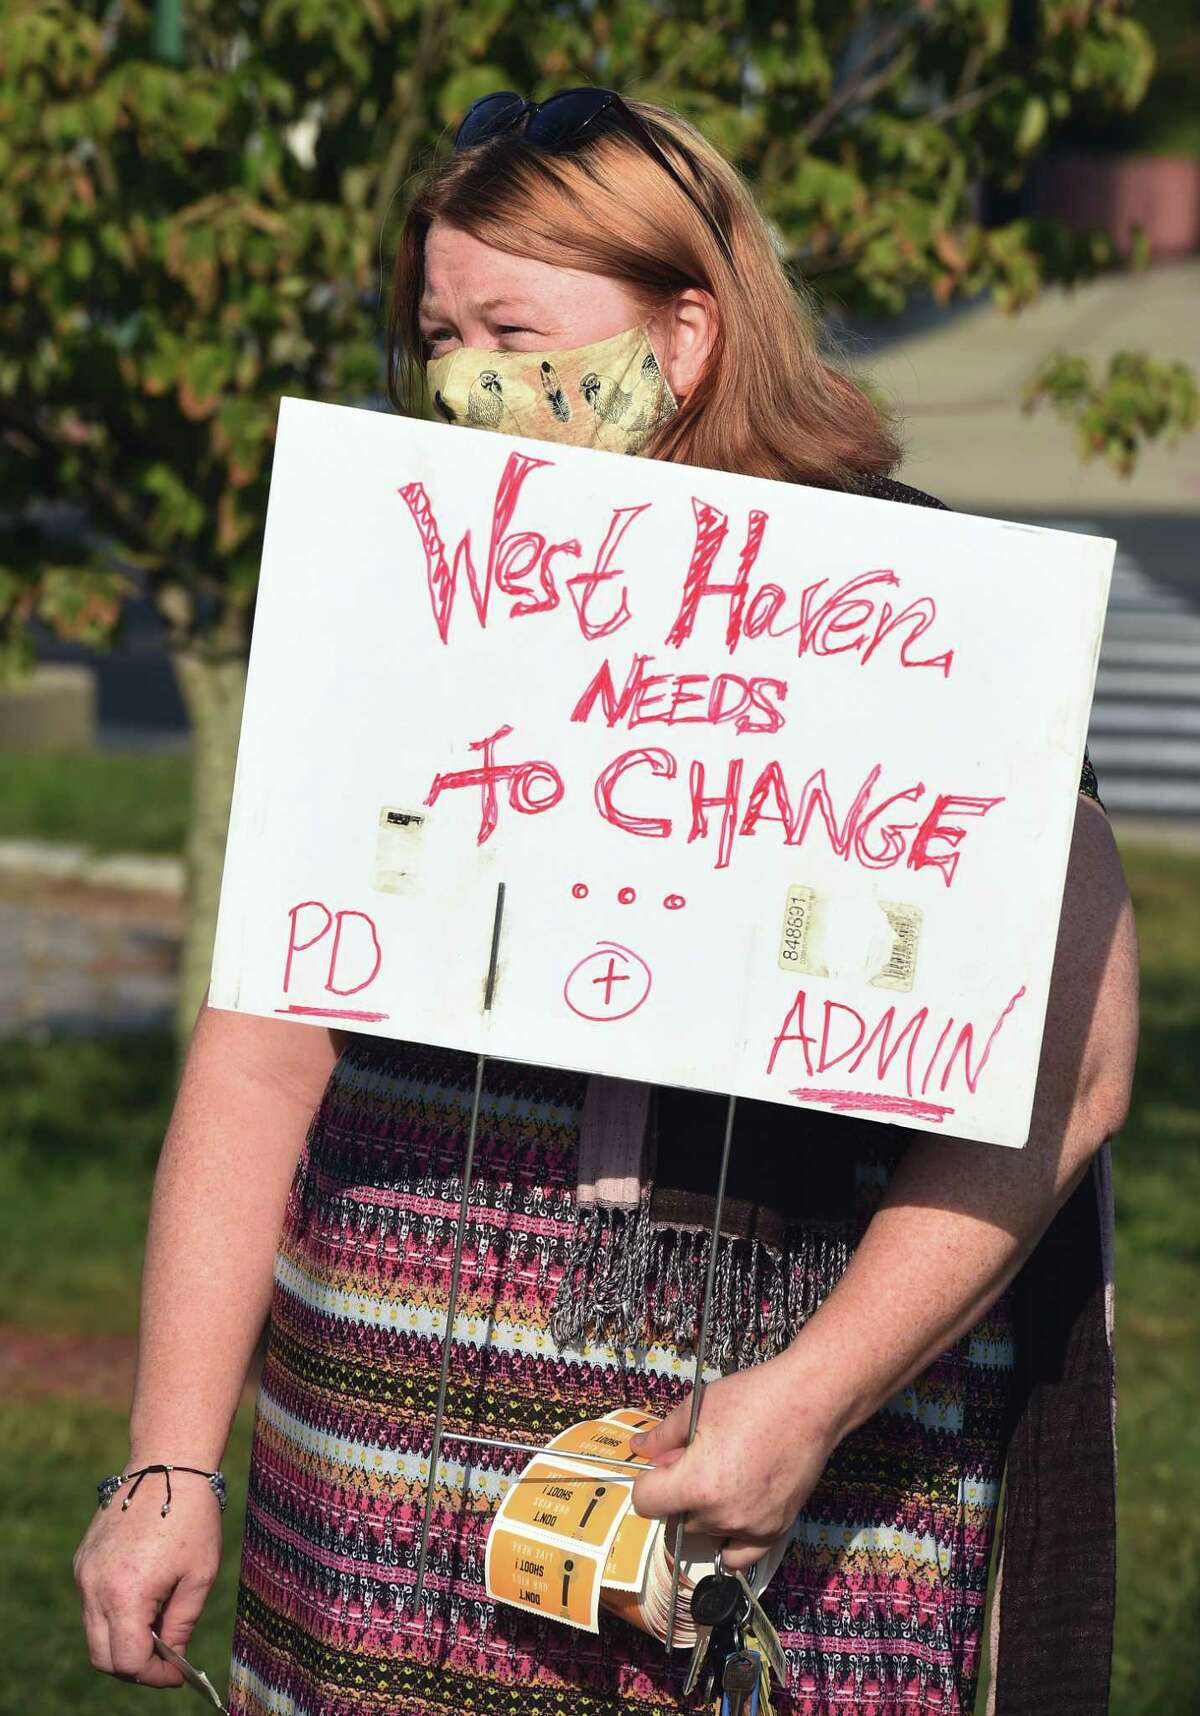 Elinor Slomba of West Haven listens to speakers at a press conference condemning recent actions by the West Haven Police Department in front of City Hall in West Haven on September 25, 2020.